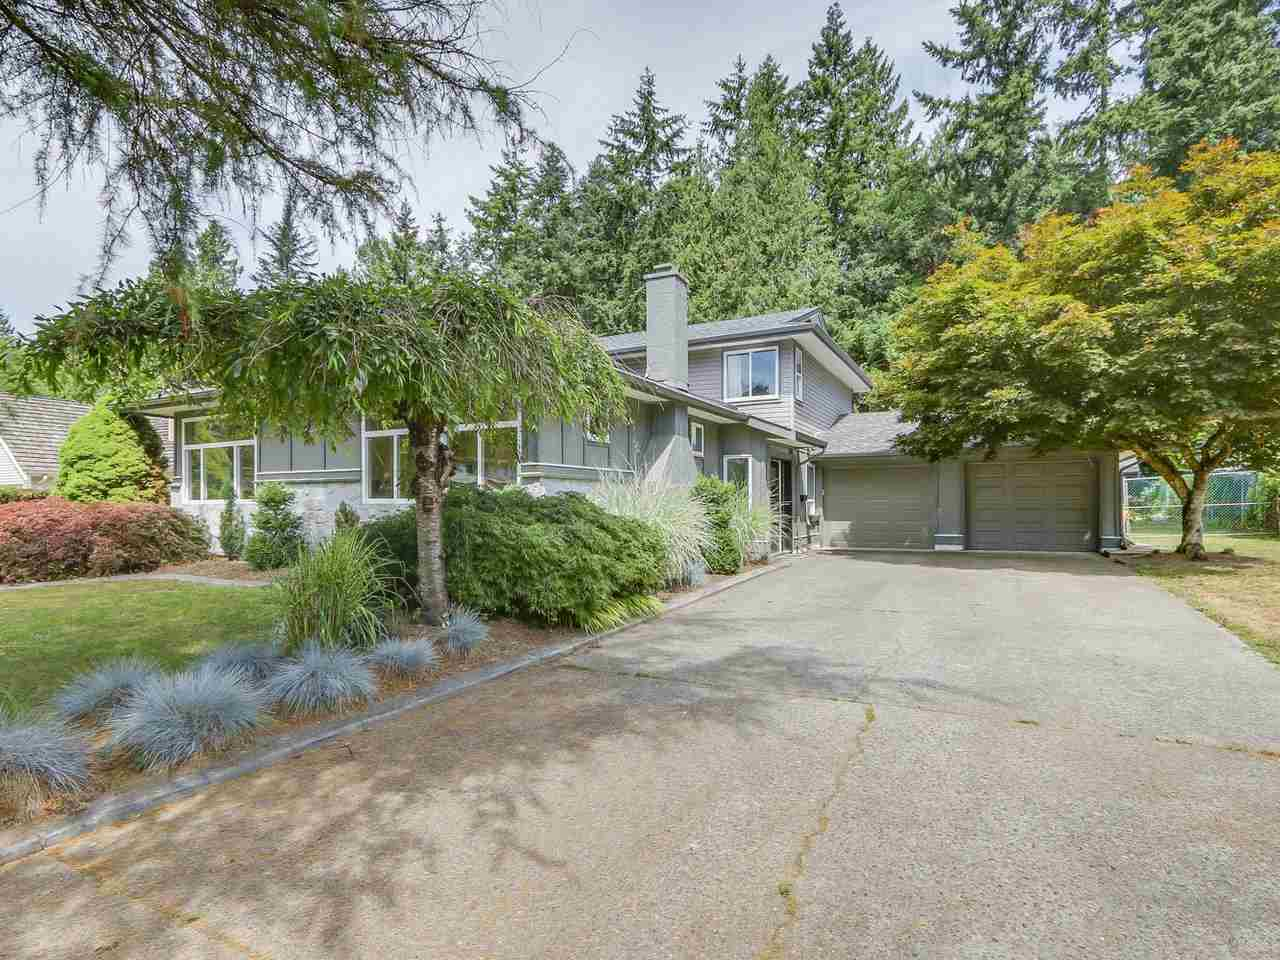 Detached at 19957 39A AVENUE, Langley, British Columbia. Image 1